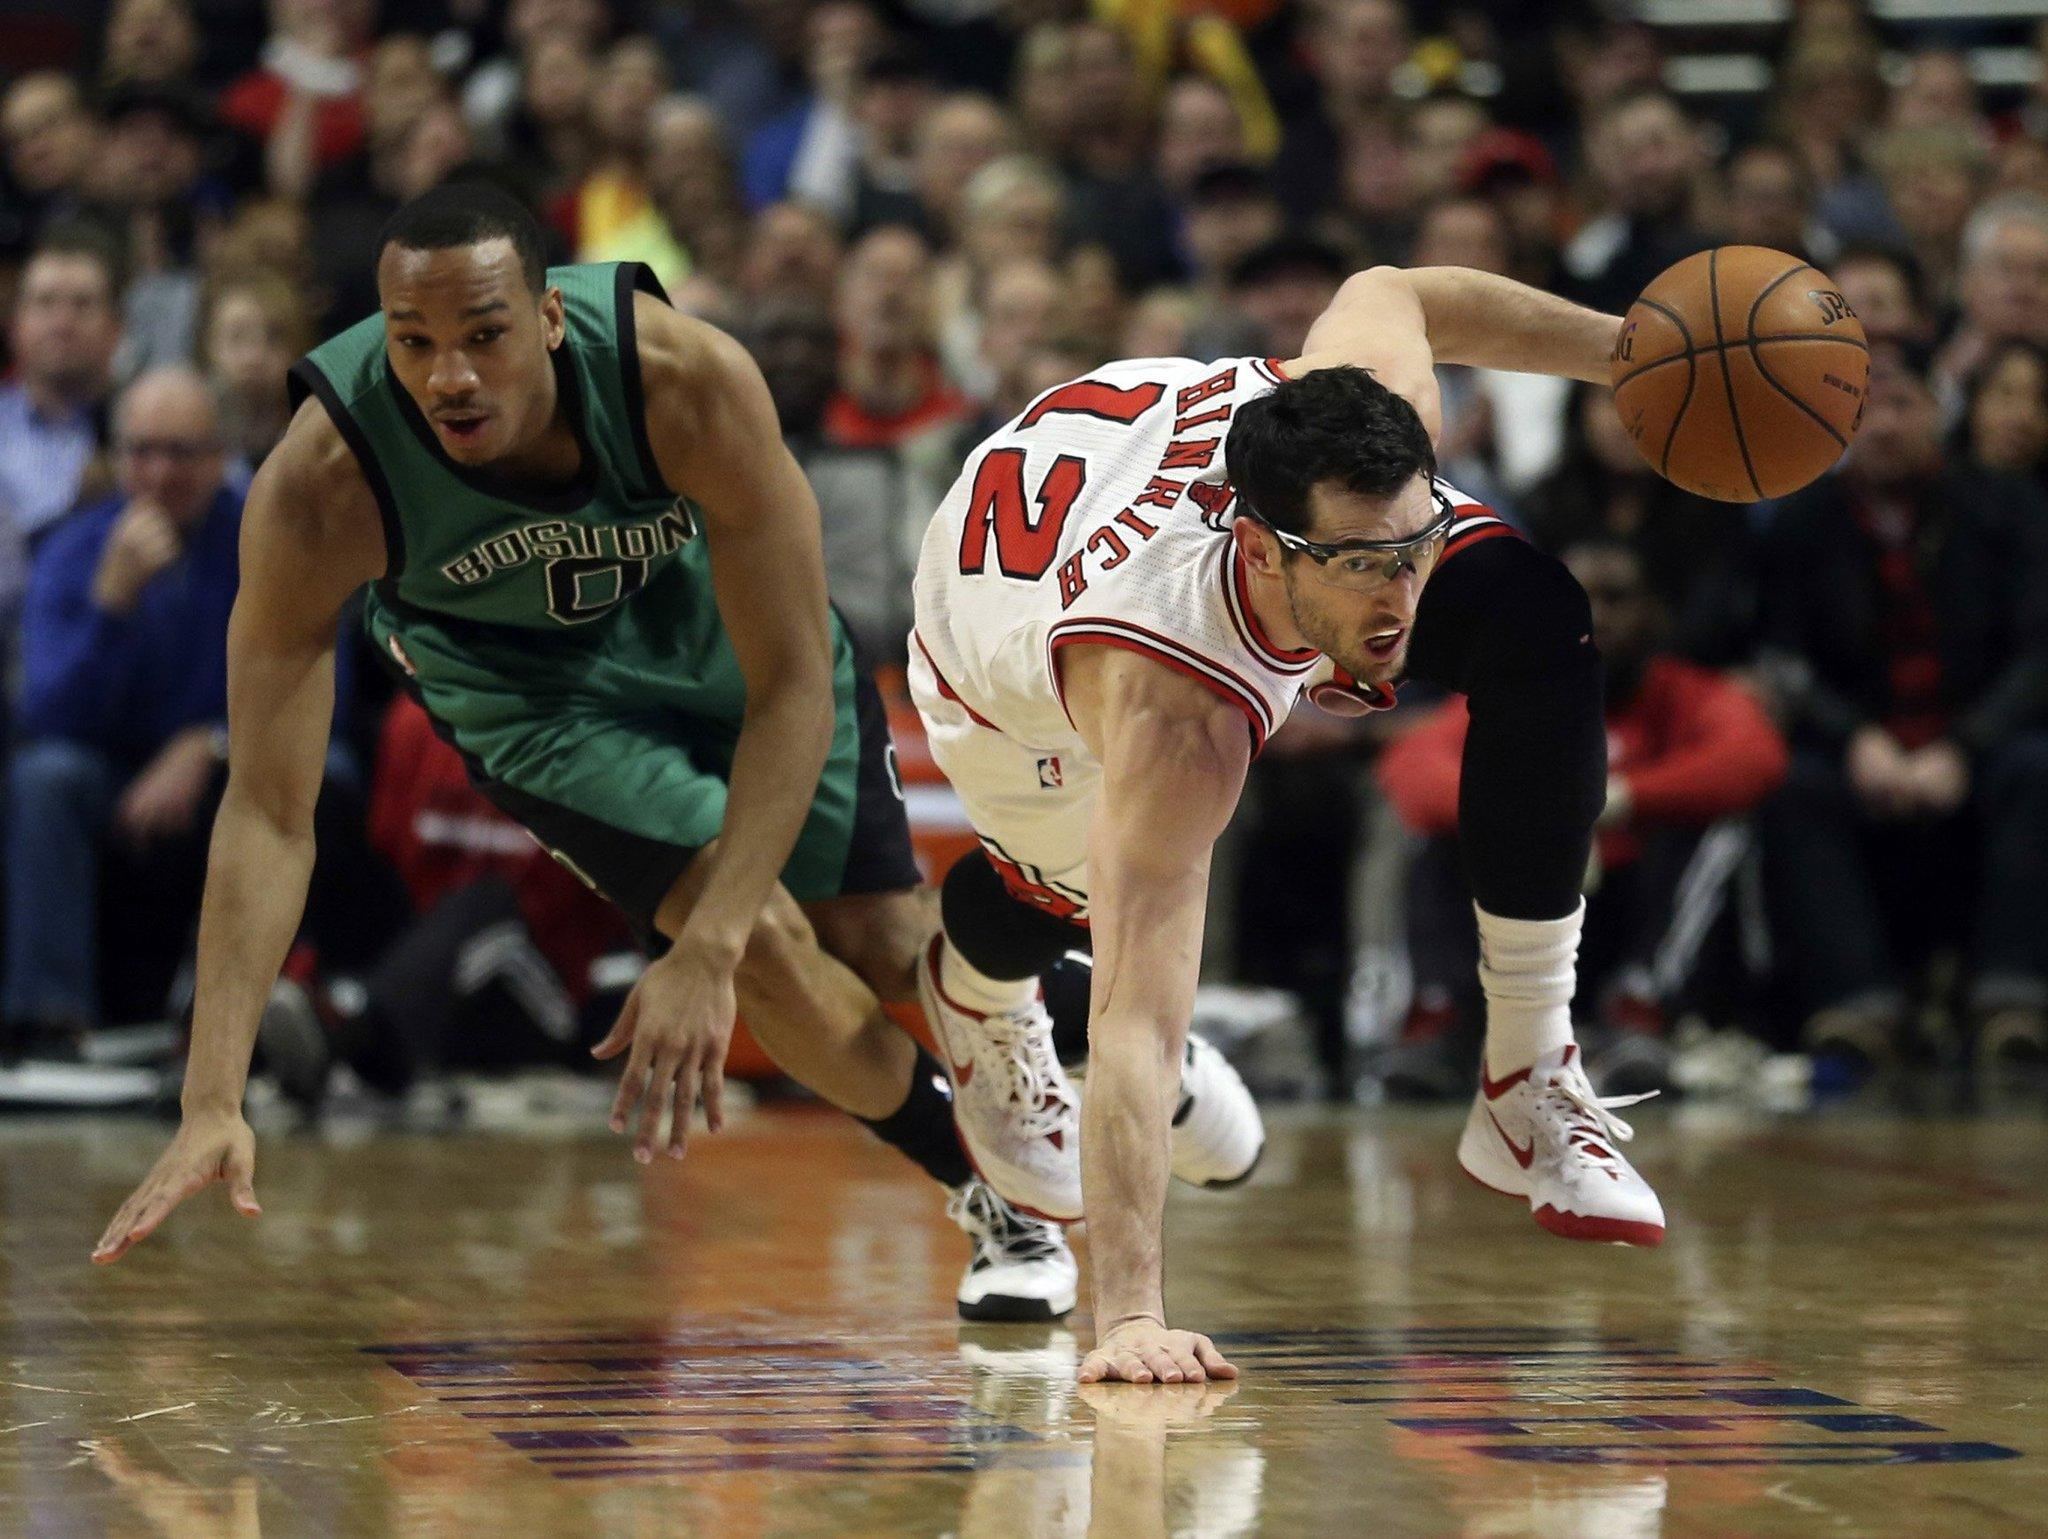 Kirk Hinrich scoops up a loose ball in front of the Celtics' Avery Bradley during the first half at the United Center.